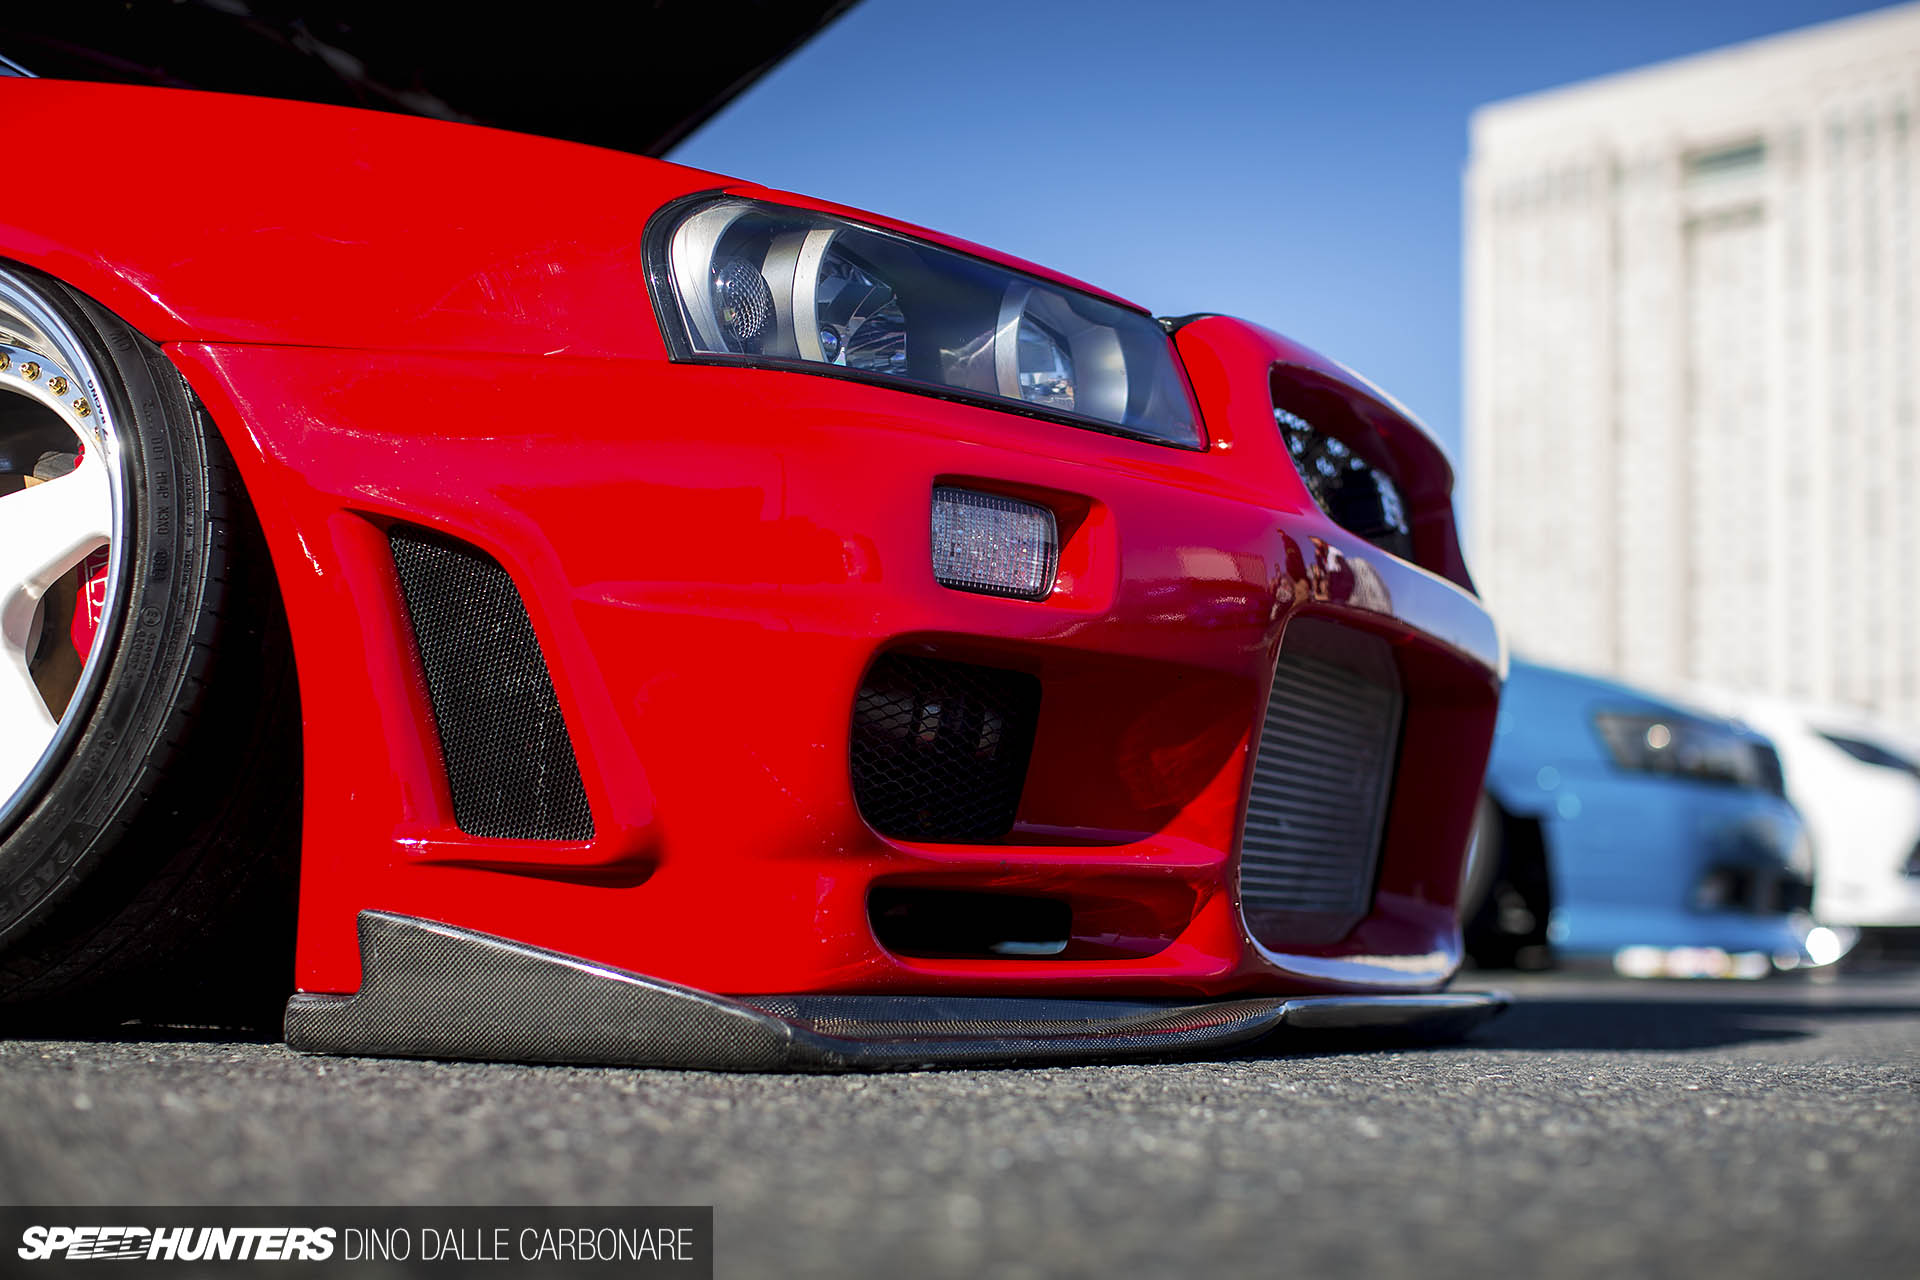 The R34 GT-R Antichrist